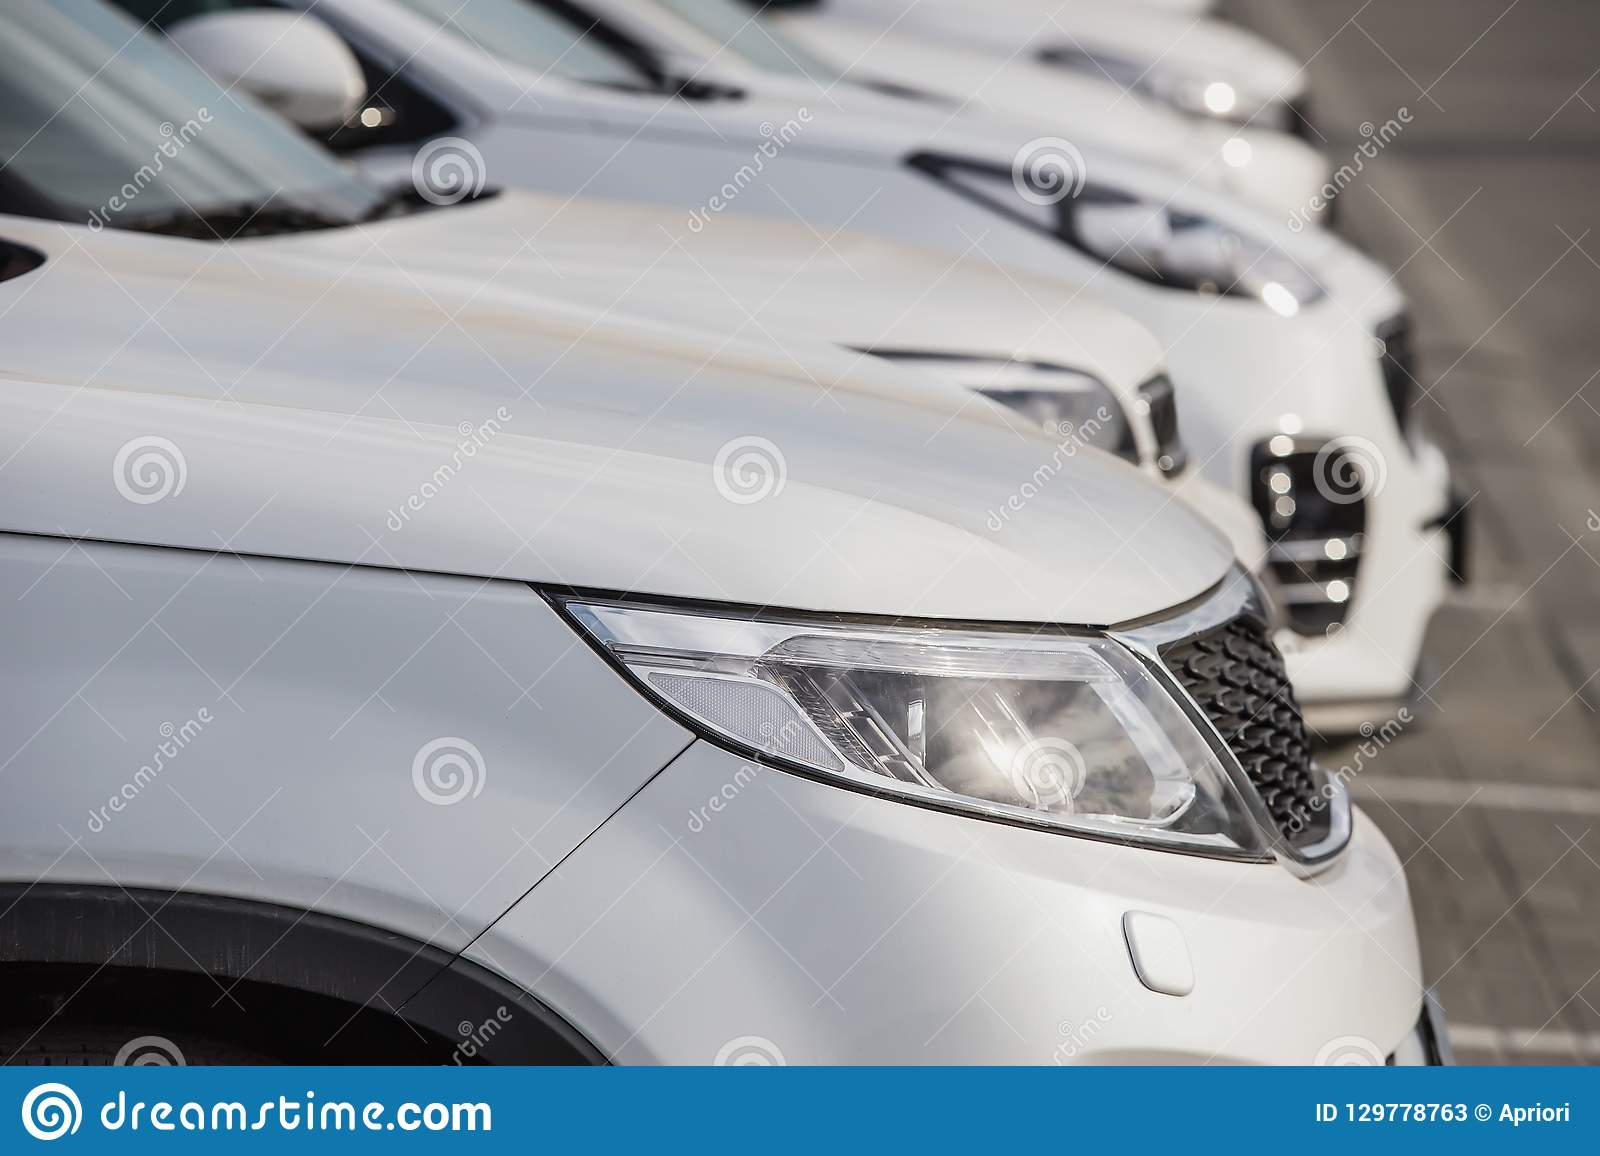 Luxury Cars For Sale Stock Lot Row Stock Image - Image of